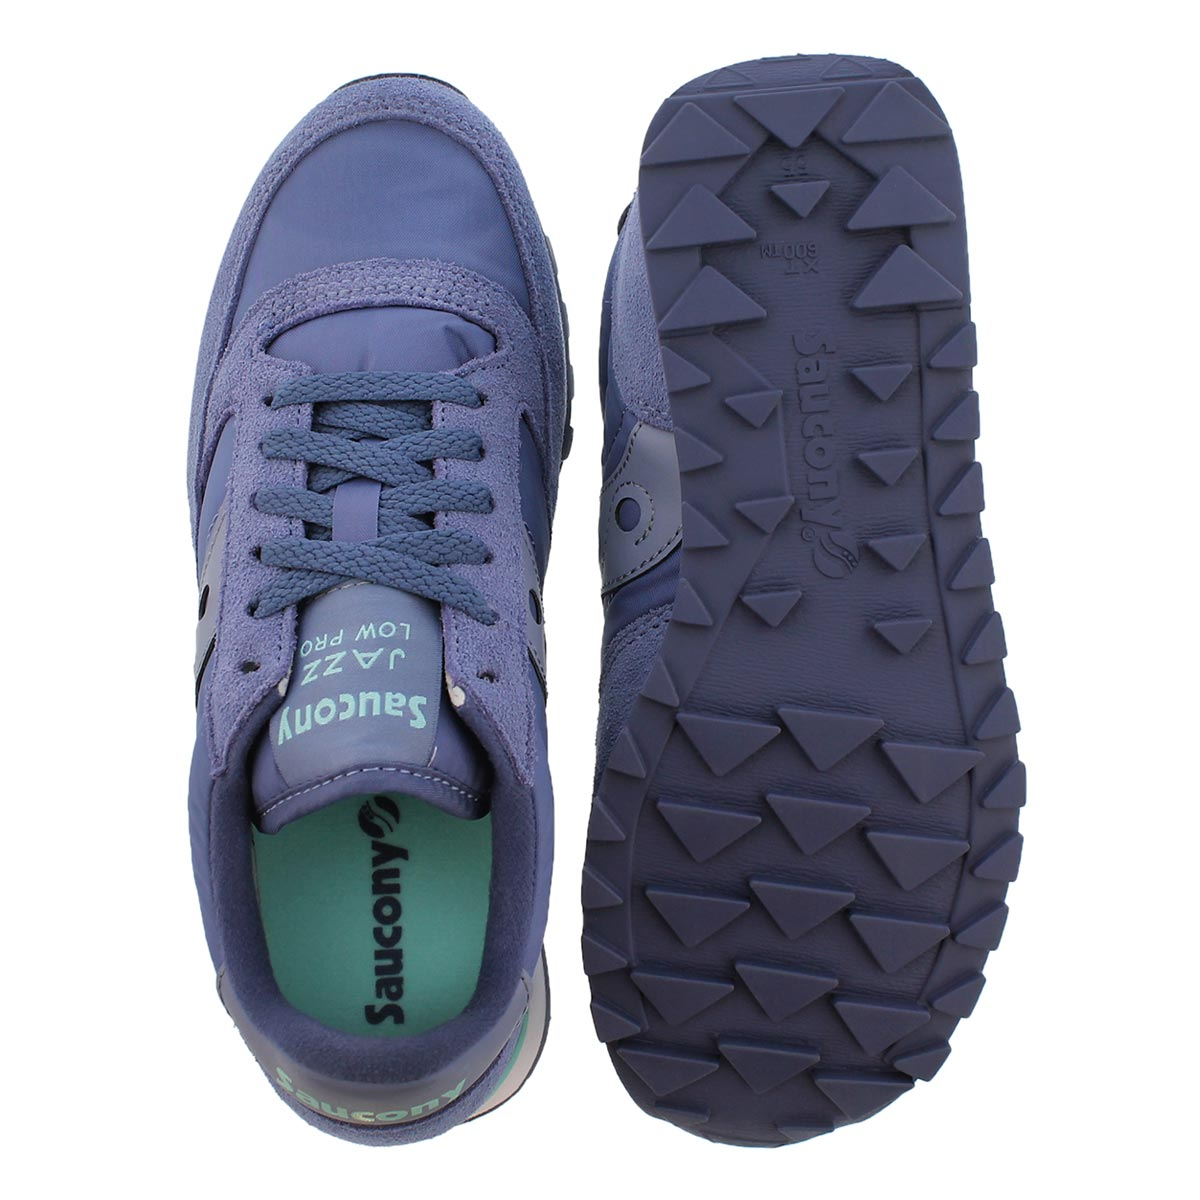 Lds Jazz Low Pro ppl lace up sneaker